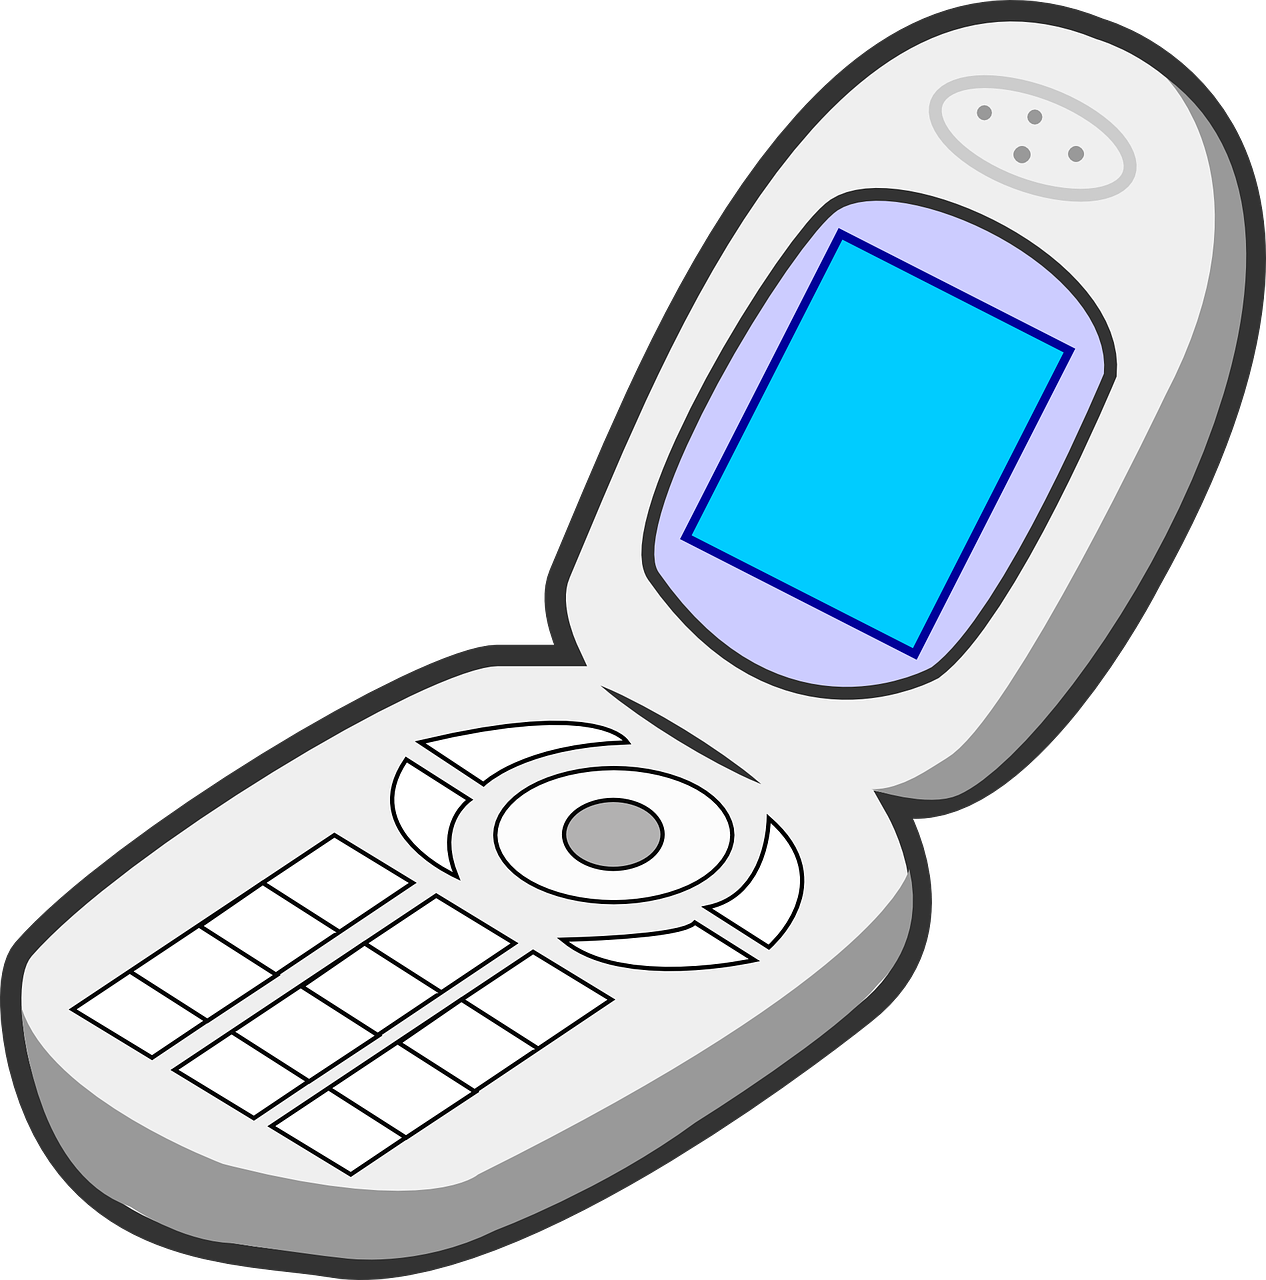 vector download Cell phone at getdrawings. Mobile clipart telepone.